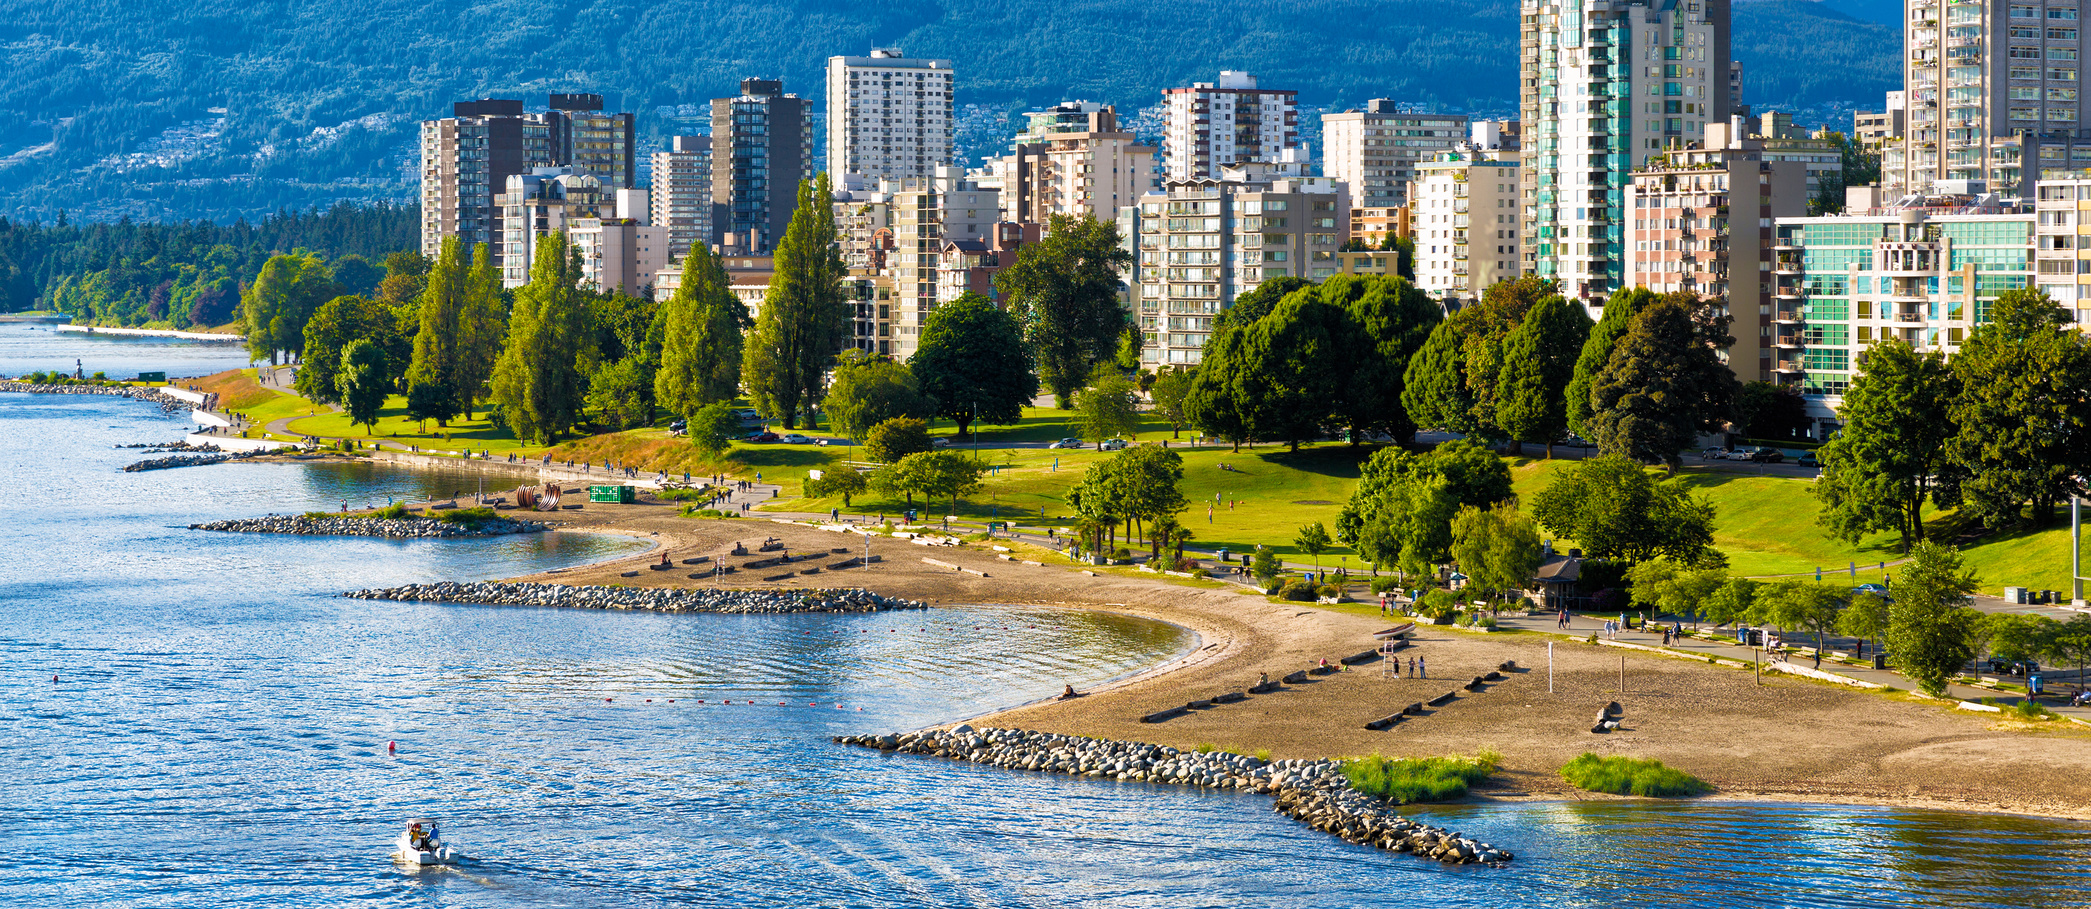 Vancouver beaches panorama, aerial view